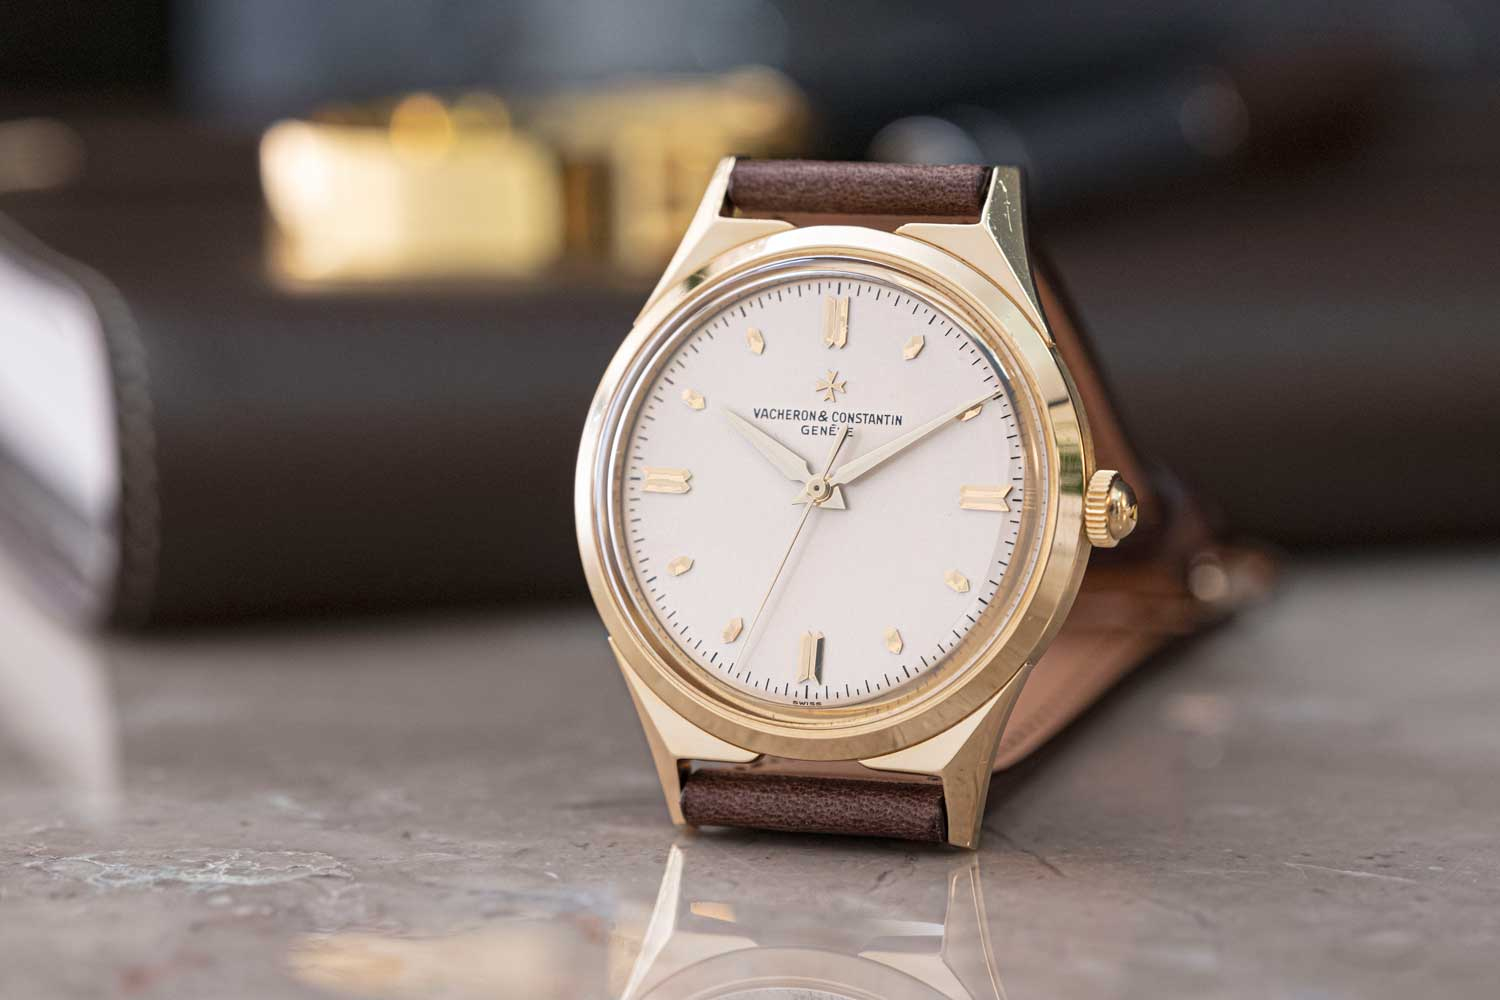 """1956: Chronomètre Royal Reference 6111; 18K yellow gold """"Royal Chronometer"""" wristwatch; silvered dial, 4/4 pointed baton indexes and 8 hexagonal indexes, external minute circle, central seconds with counterpoise (©Revolution)"""